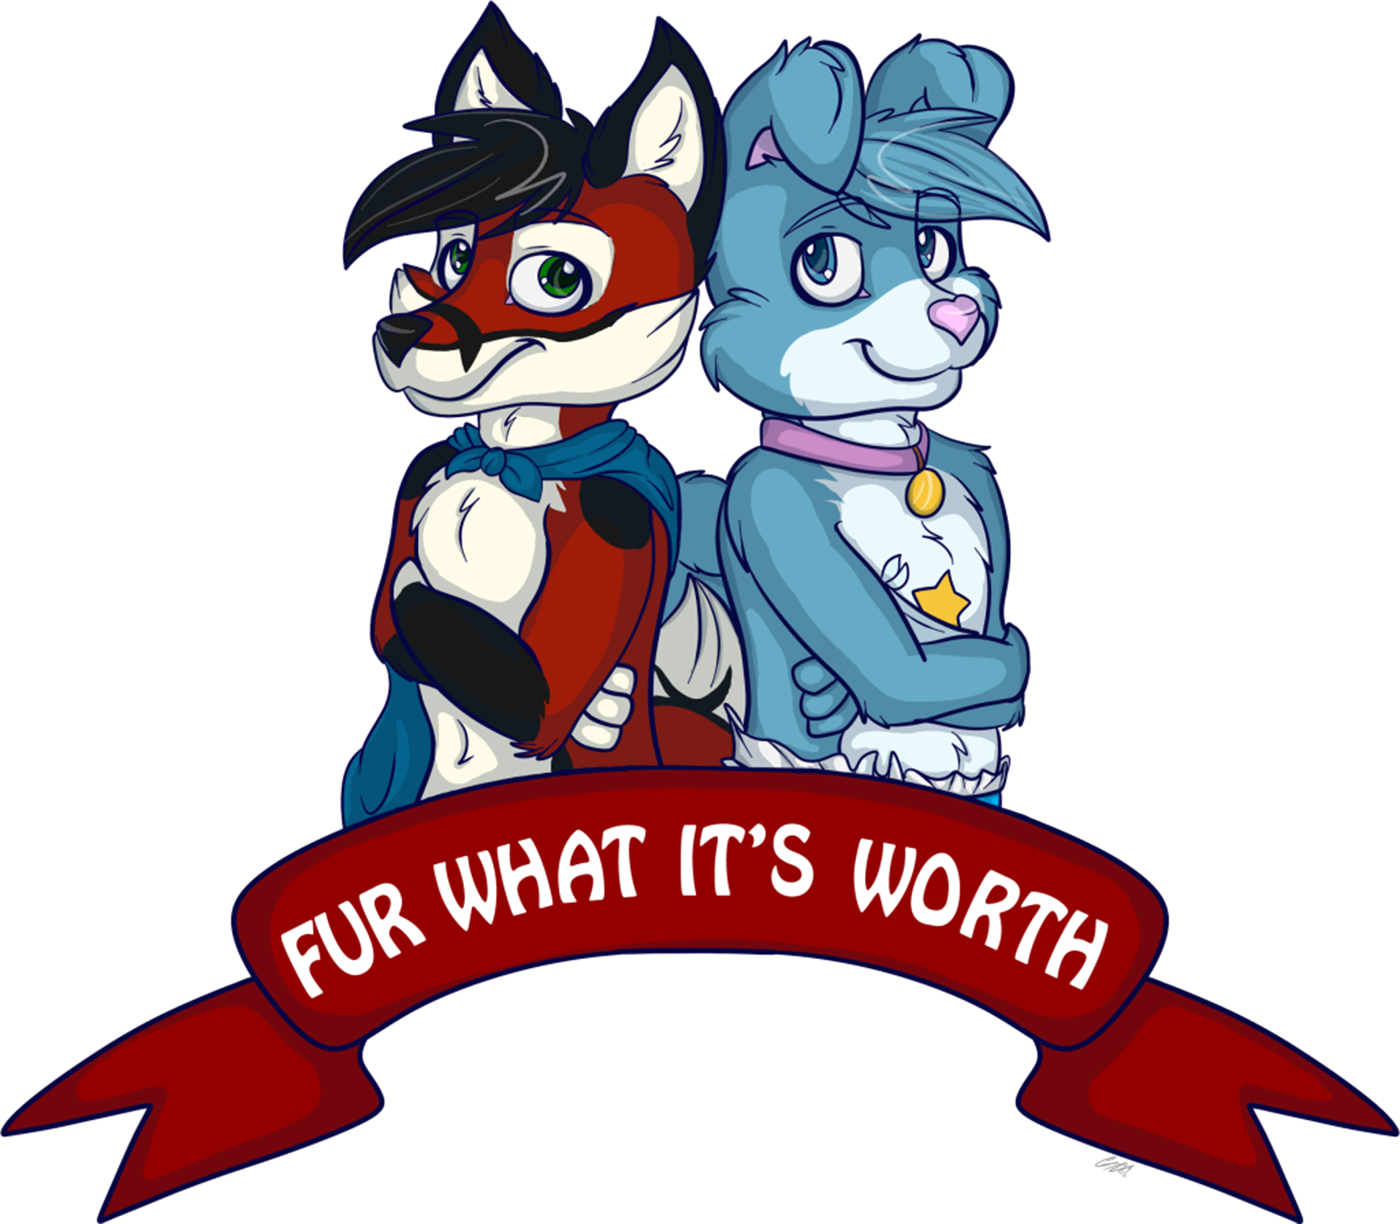 Episodes – Fur What It's Worth